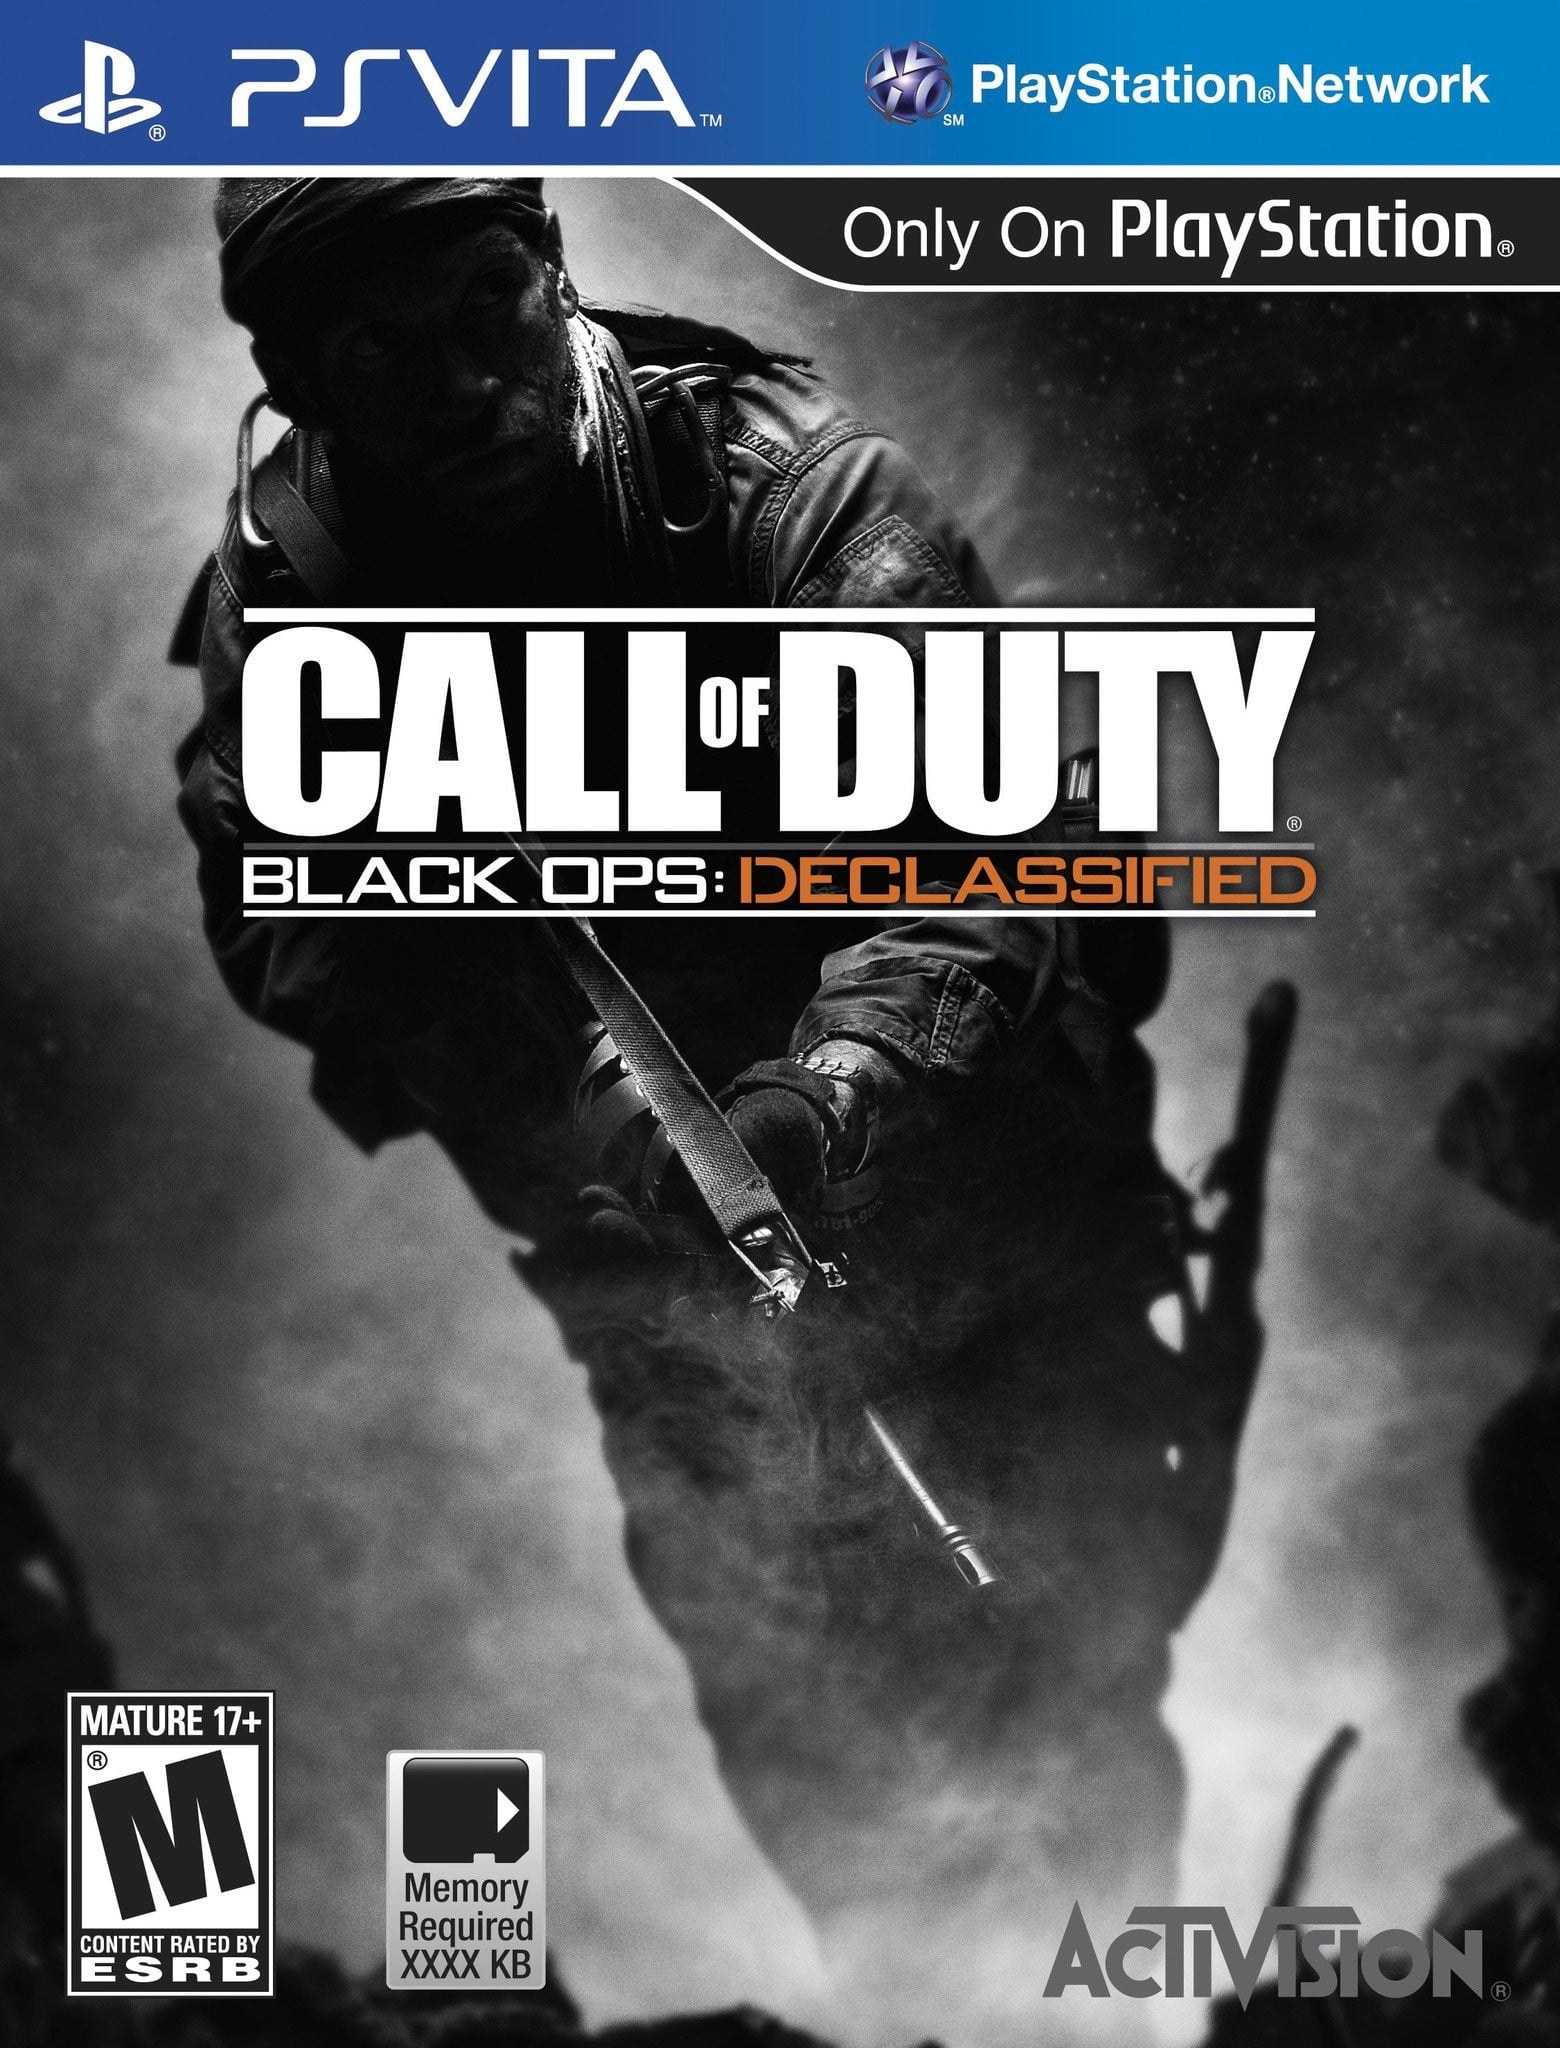 Call of Duty: Black Ops - ShamyStores